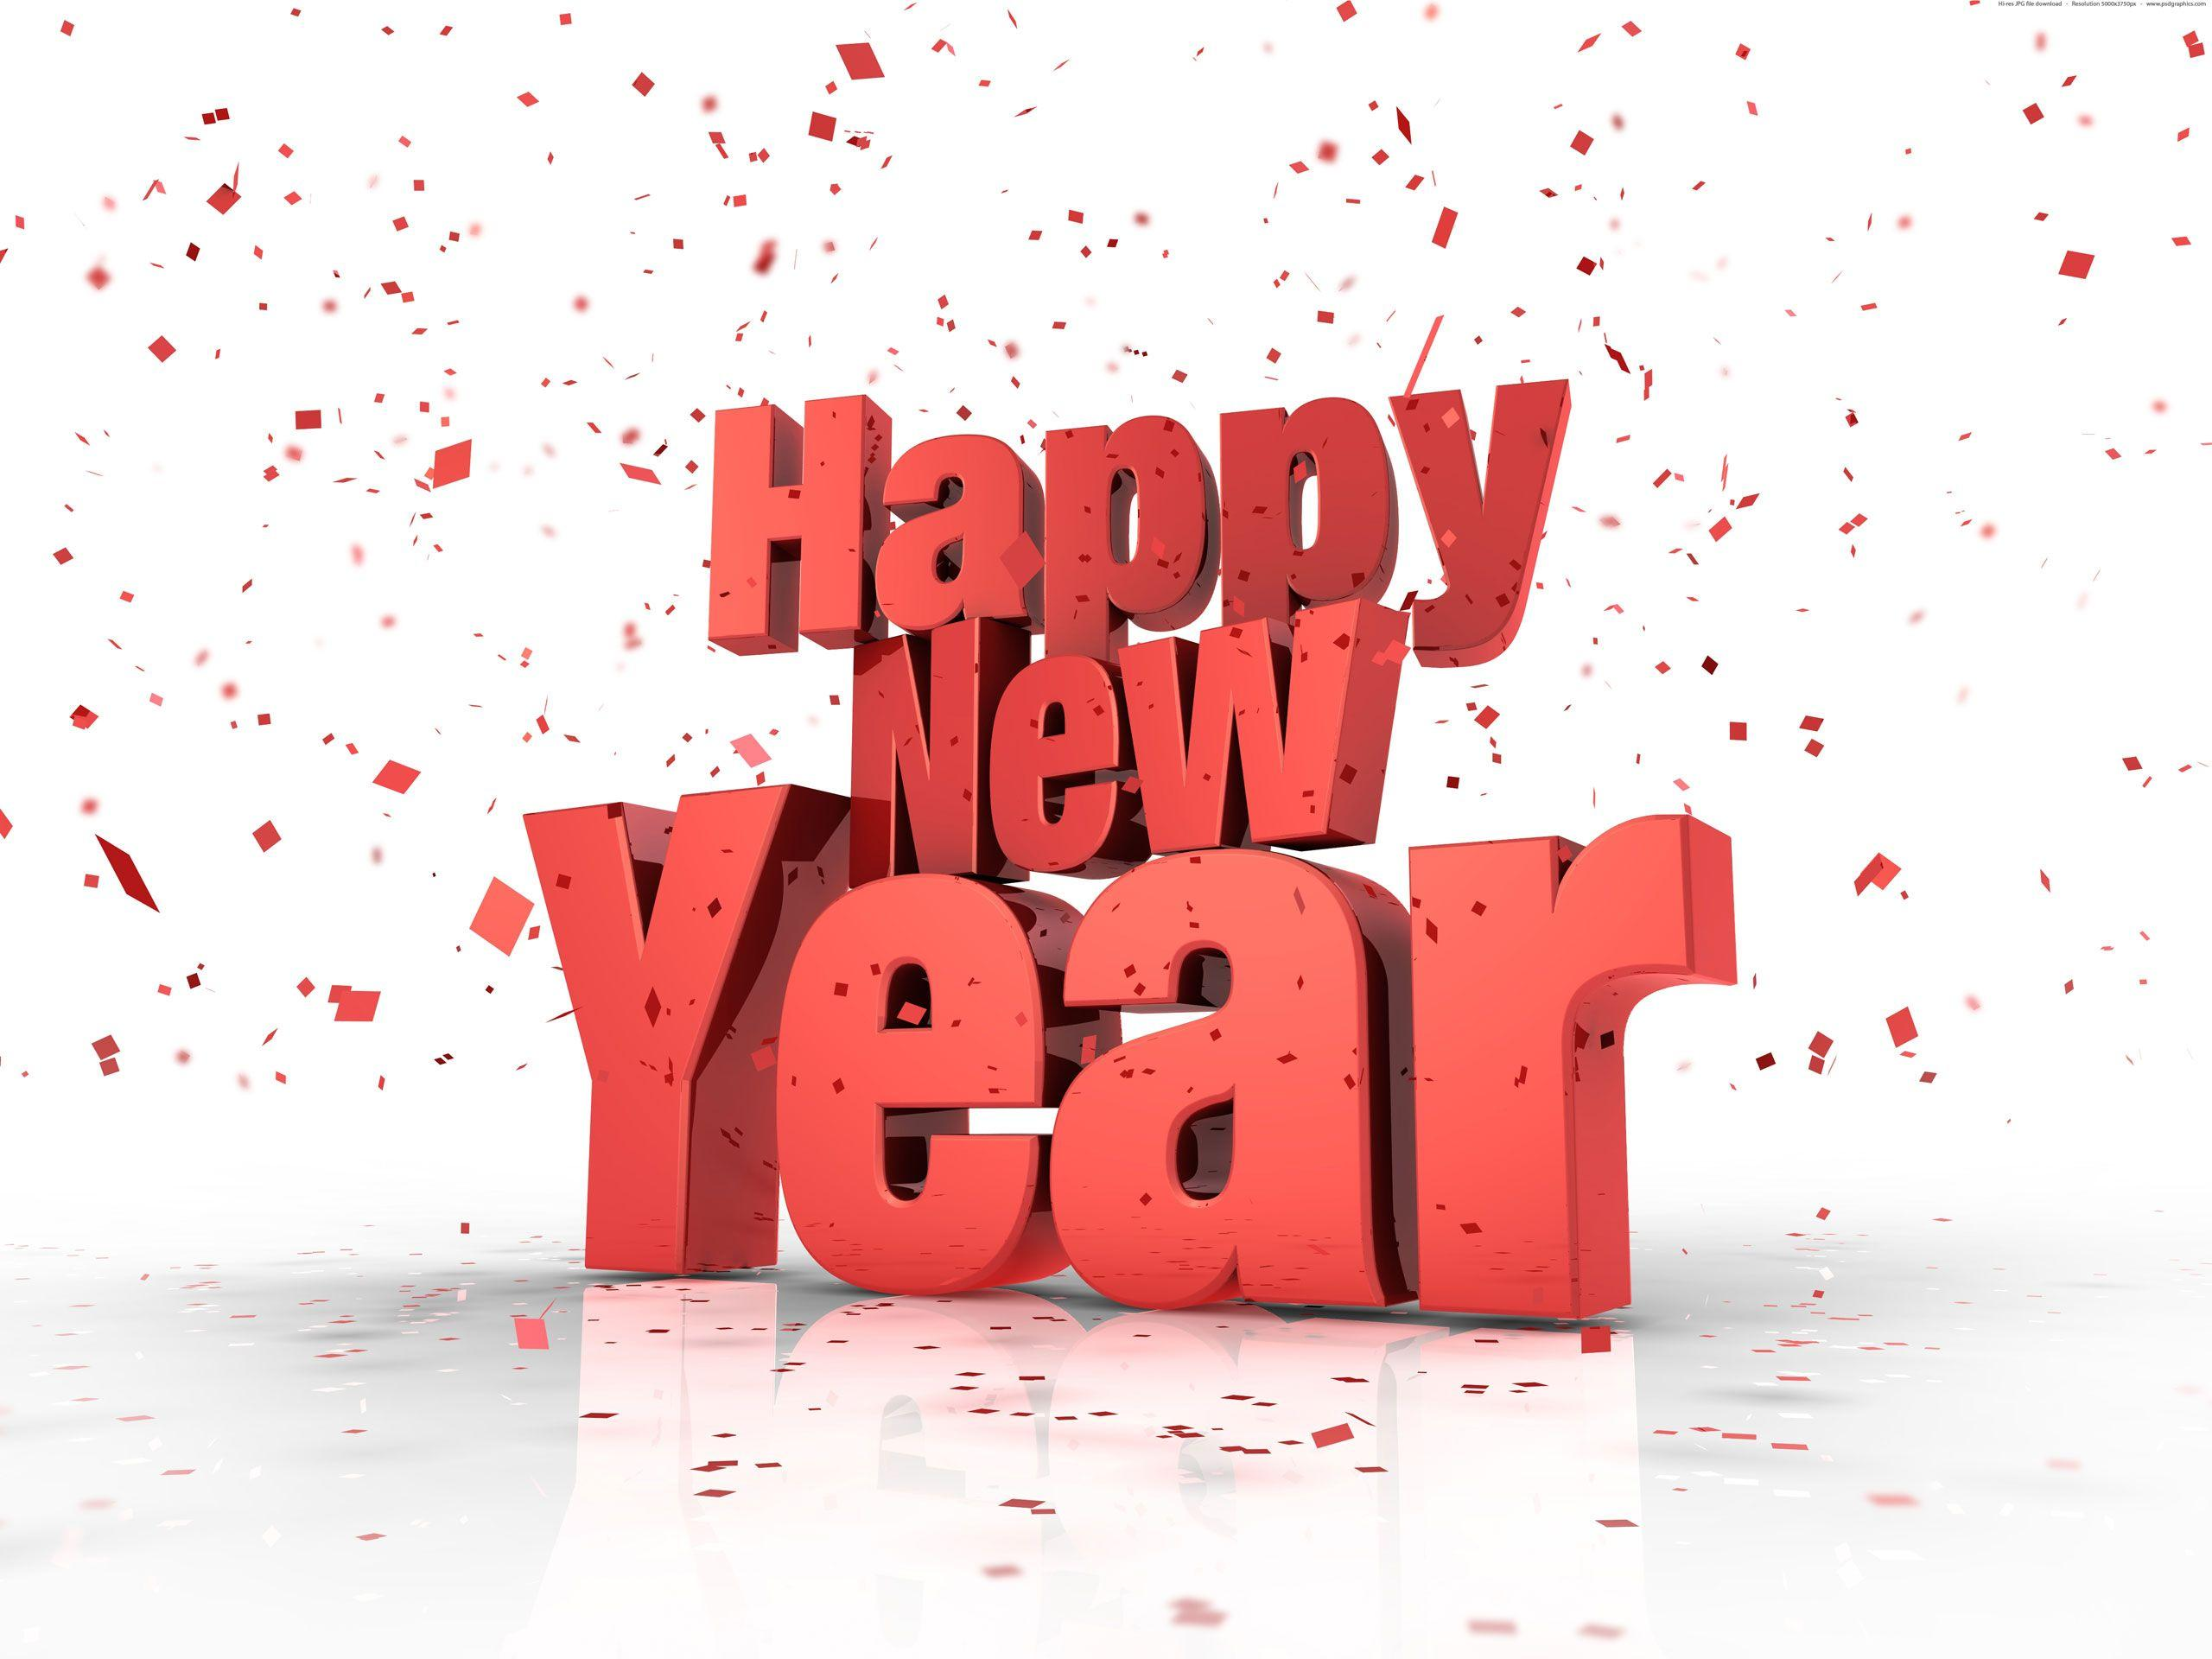 free wallpapers 2015 happy new year wallpaper